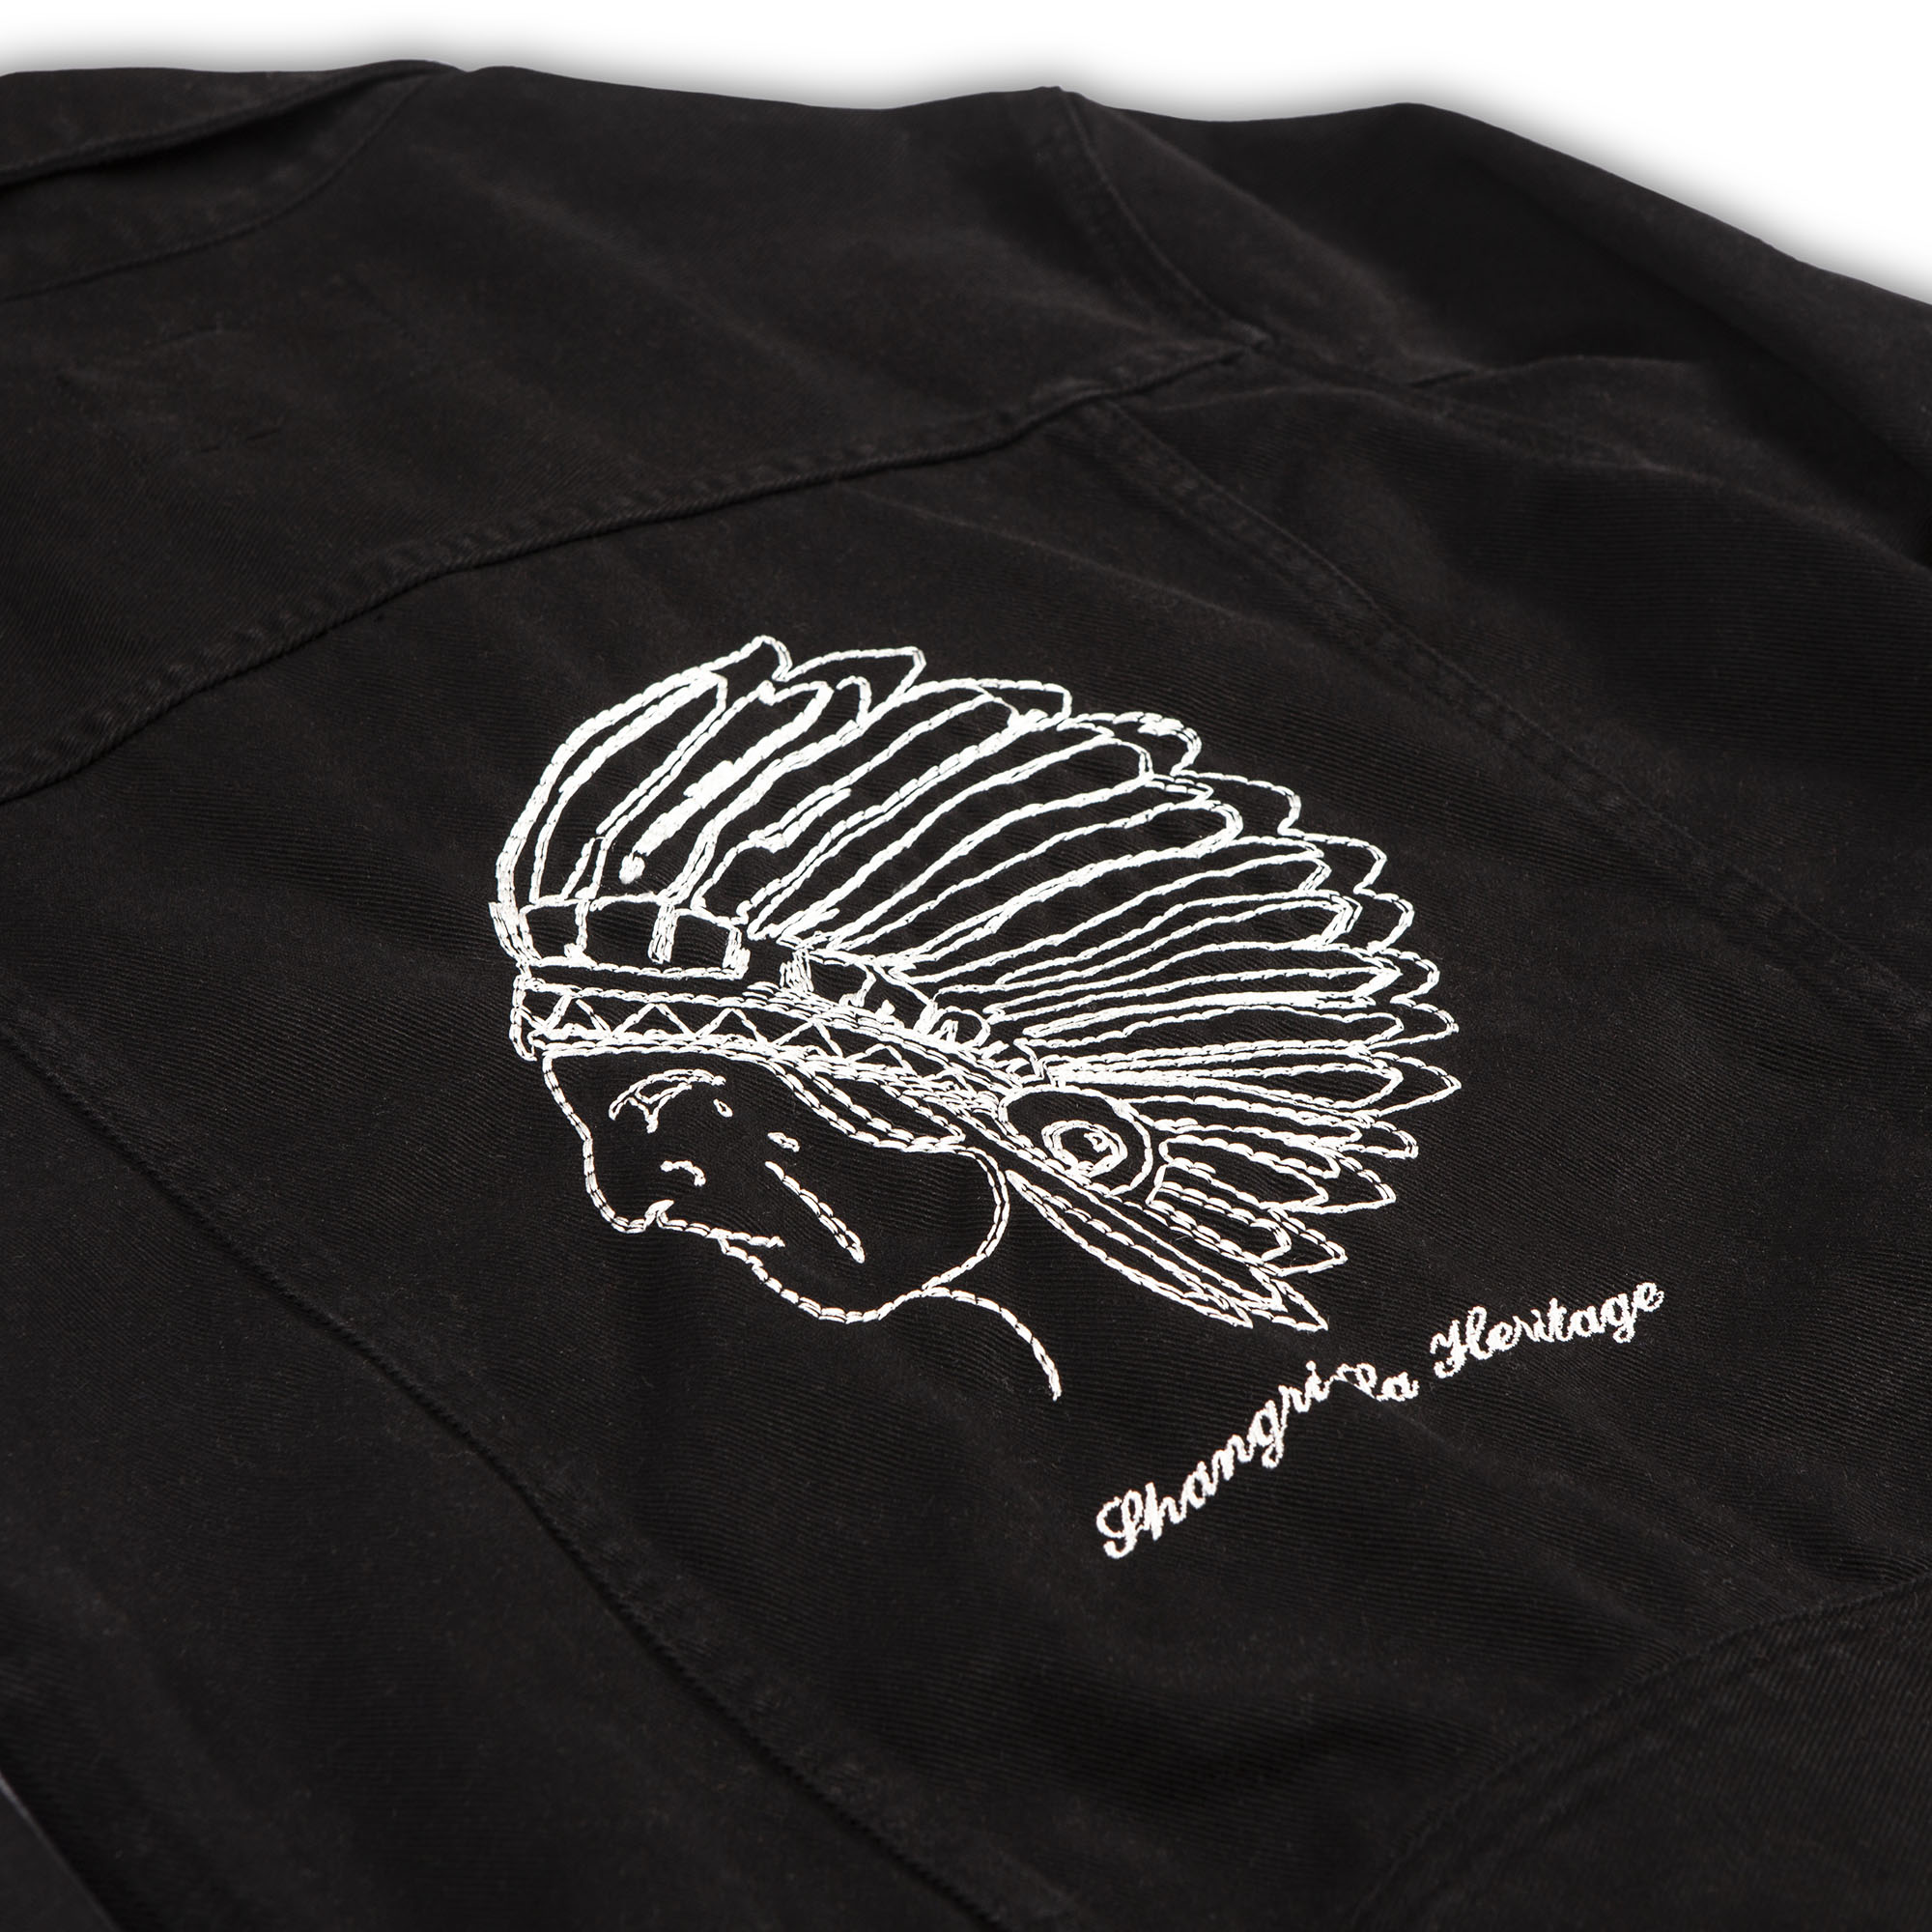 shangri-la-heritage-new-single-rider-toro-seduto-black-canvas-jacket-still-life-embroidery